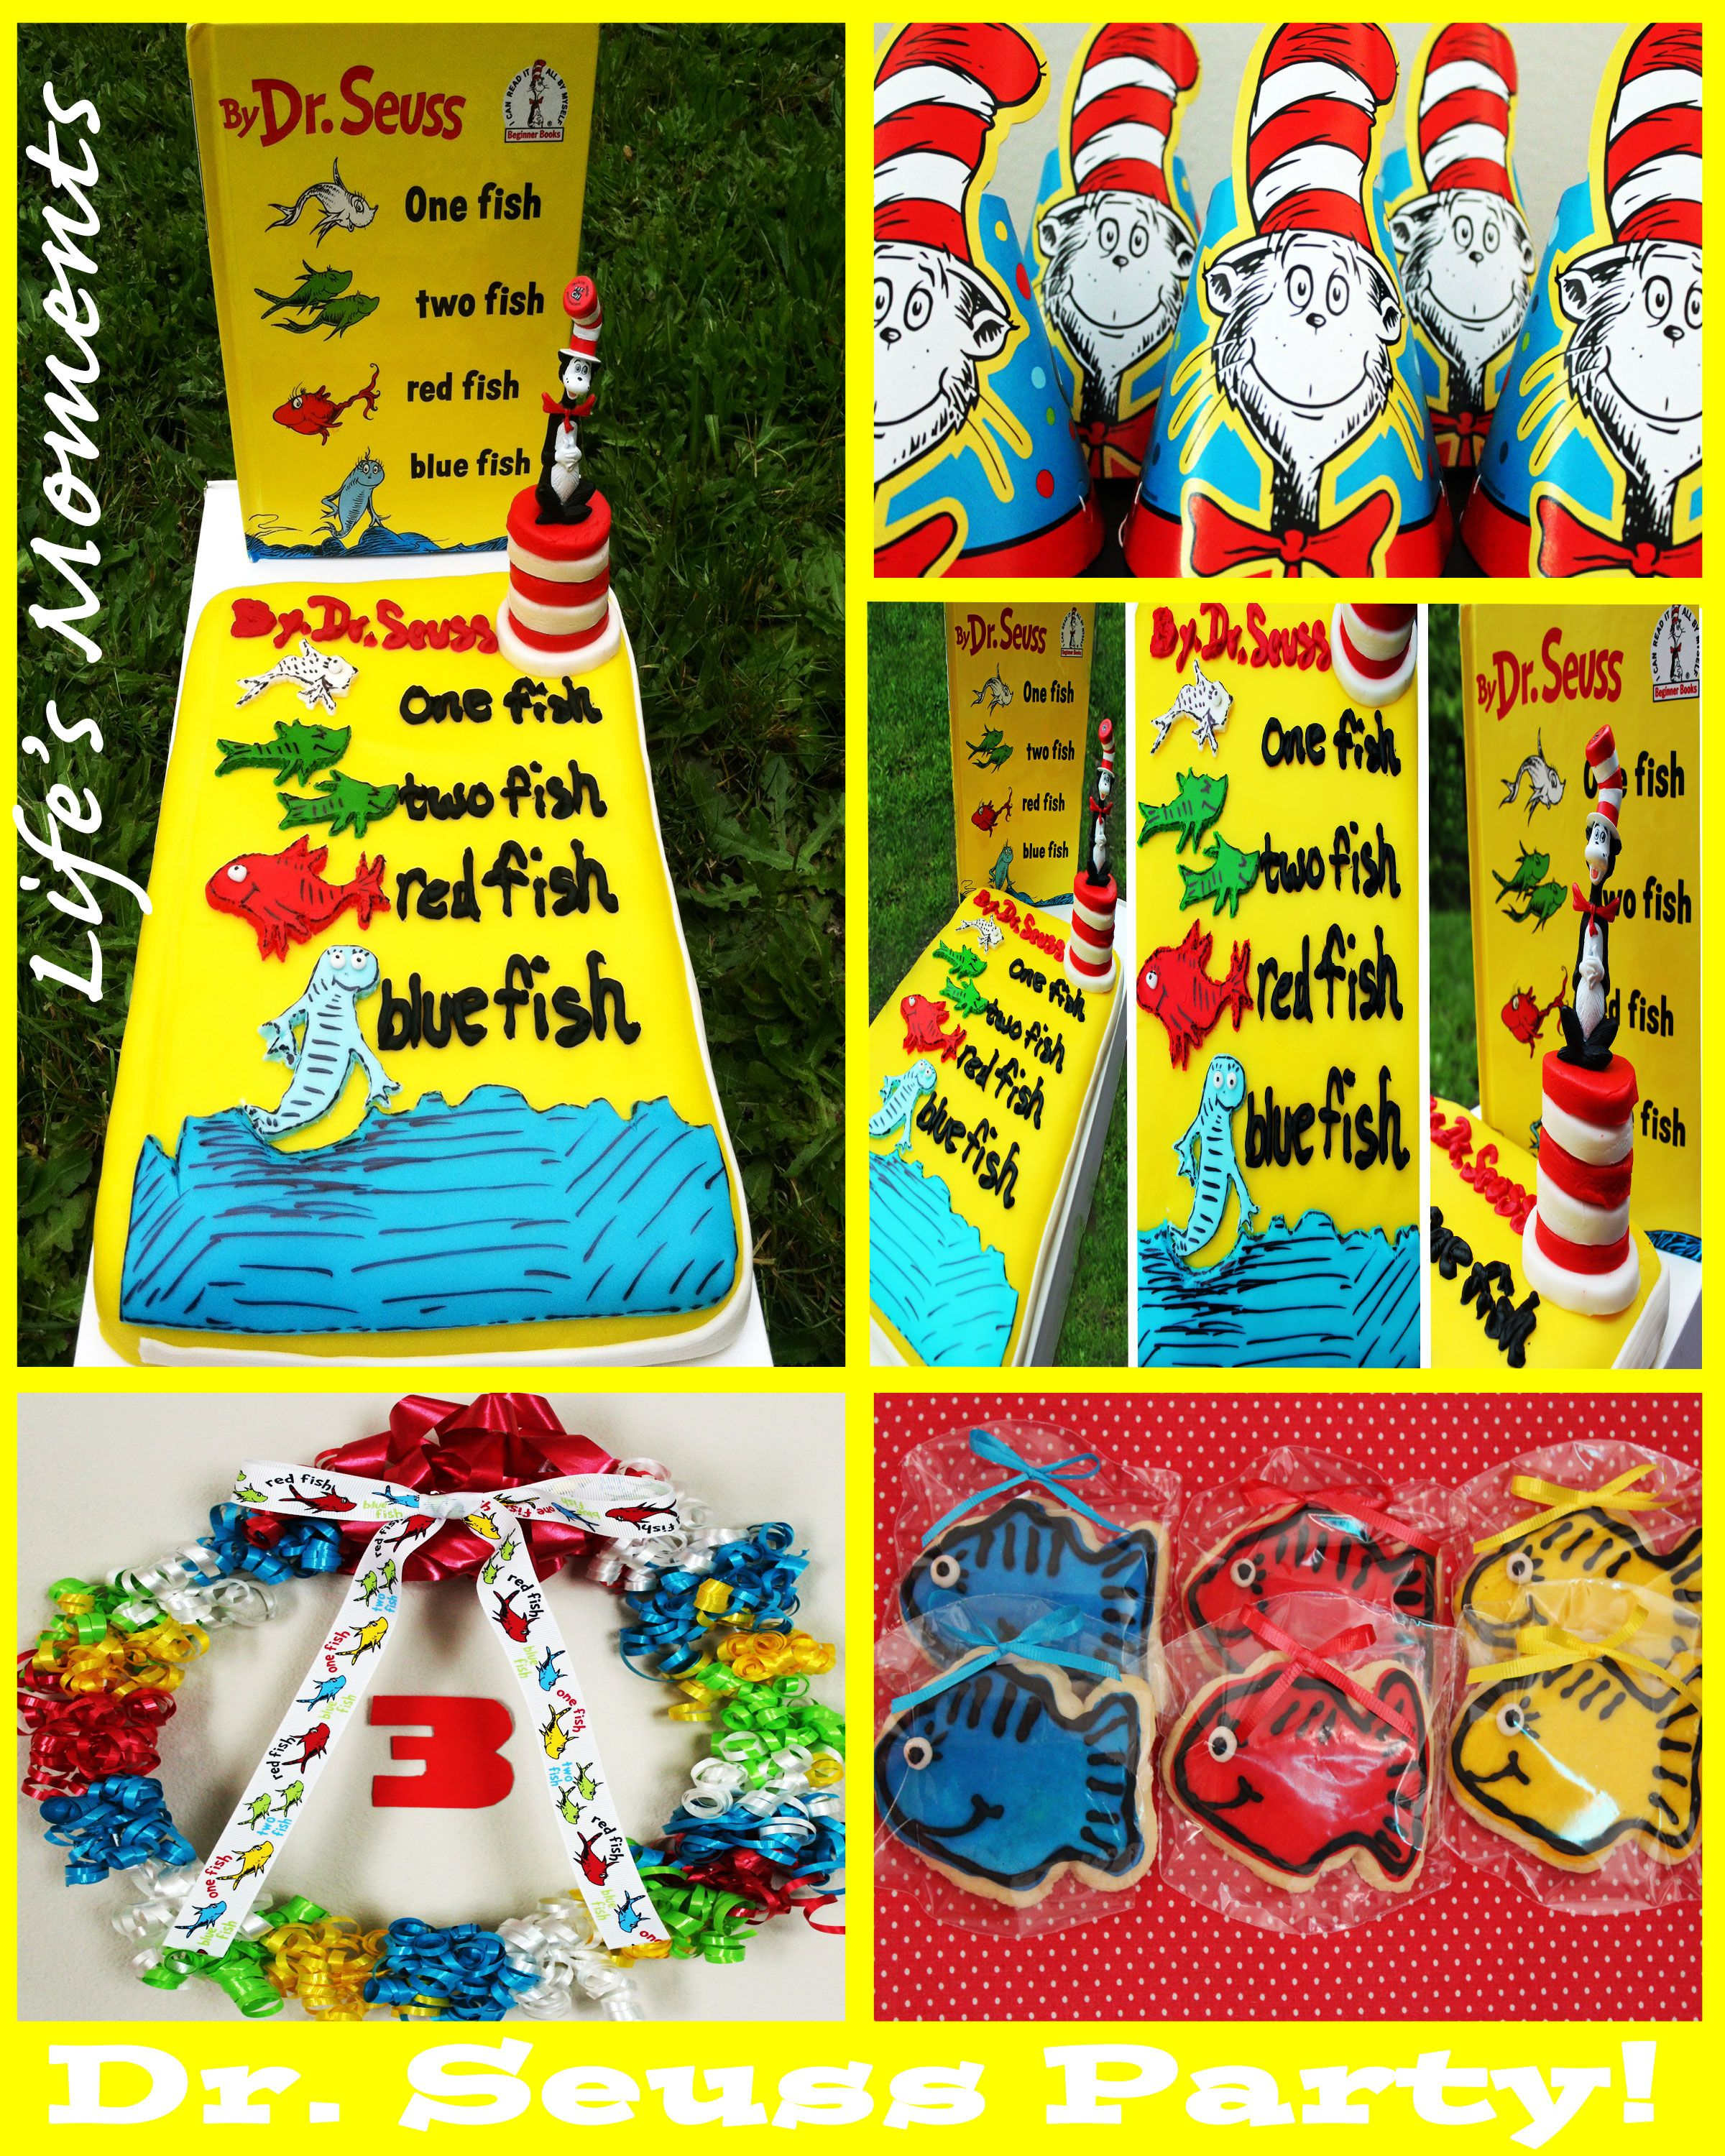 Celebrating Lovey Turning Three Birthdays Birthday party ideas